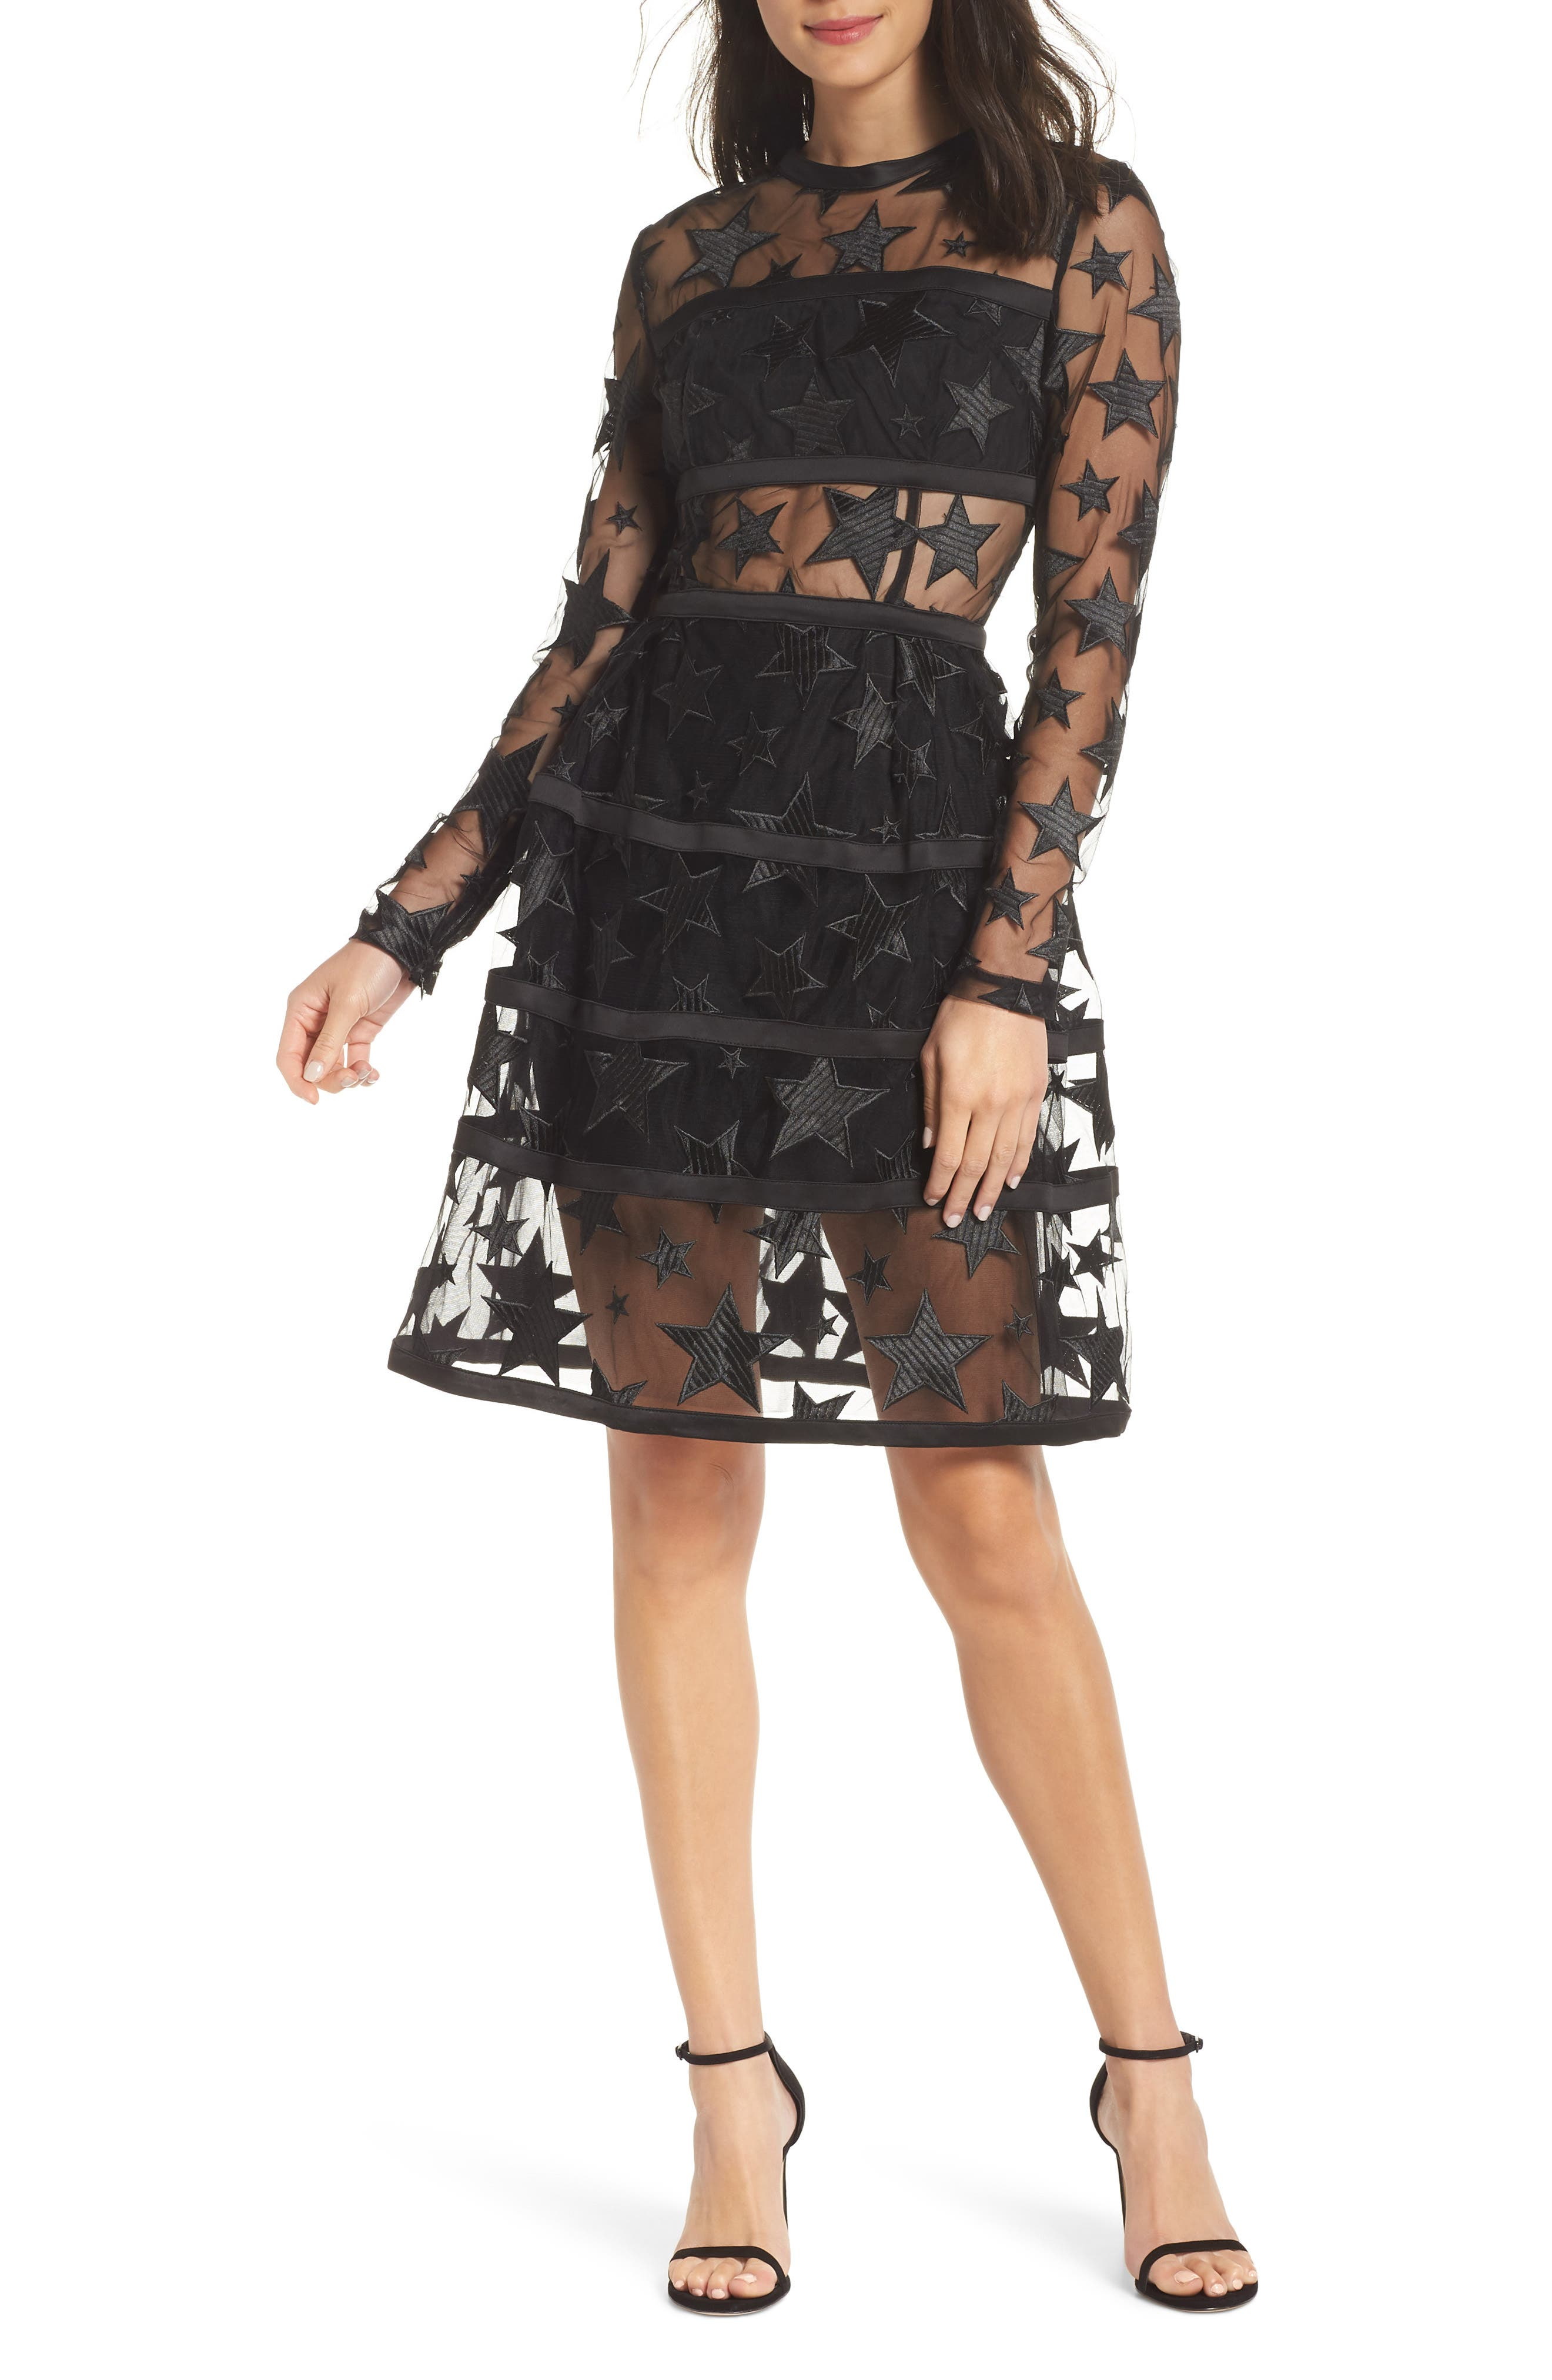 BRONX AND BANCO Adel Star & Stripes Party Dress in Black